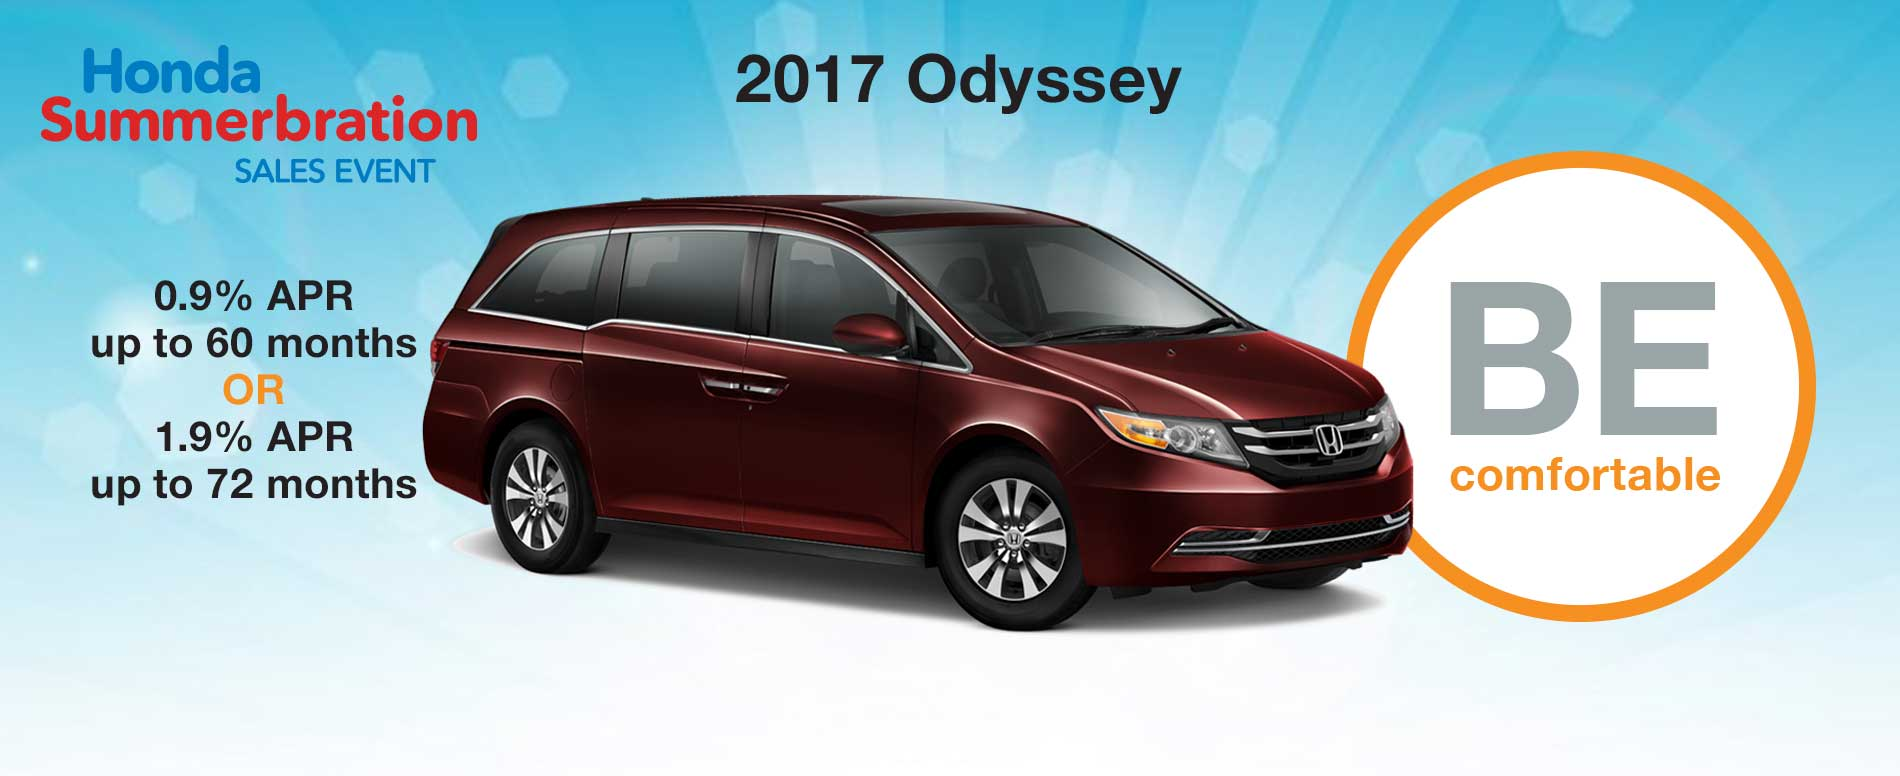 Purchase a 2017 Honda Odyssey and get 0.9% APR up to 60 months OR 1.9% APR up to 72 months.